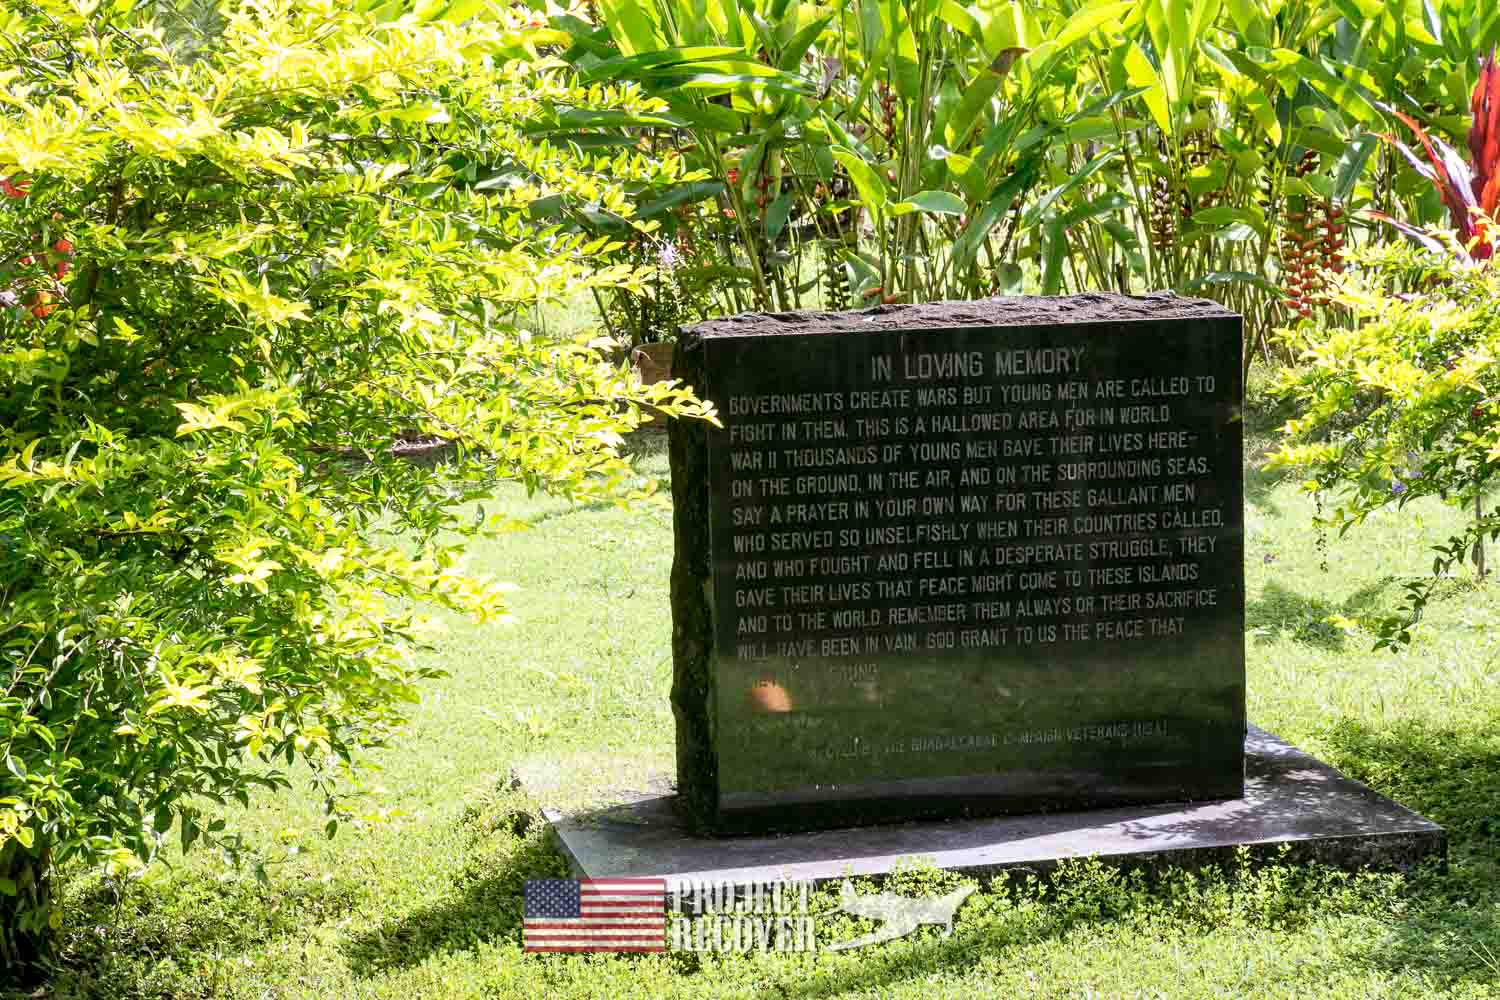 Memorial Headstone - Vilu War Museum - Honiara - Nose gunners view Japanese WWII bomber - Vilu War Museum - Honiara - while looking to find Solomon Islands MIAs - Project Recover and BentProp Project are committed to bringing the MIA home. Photos by Harry Parker Photography.com